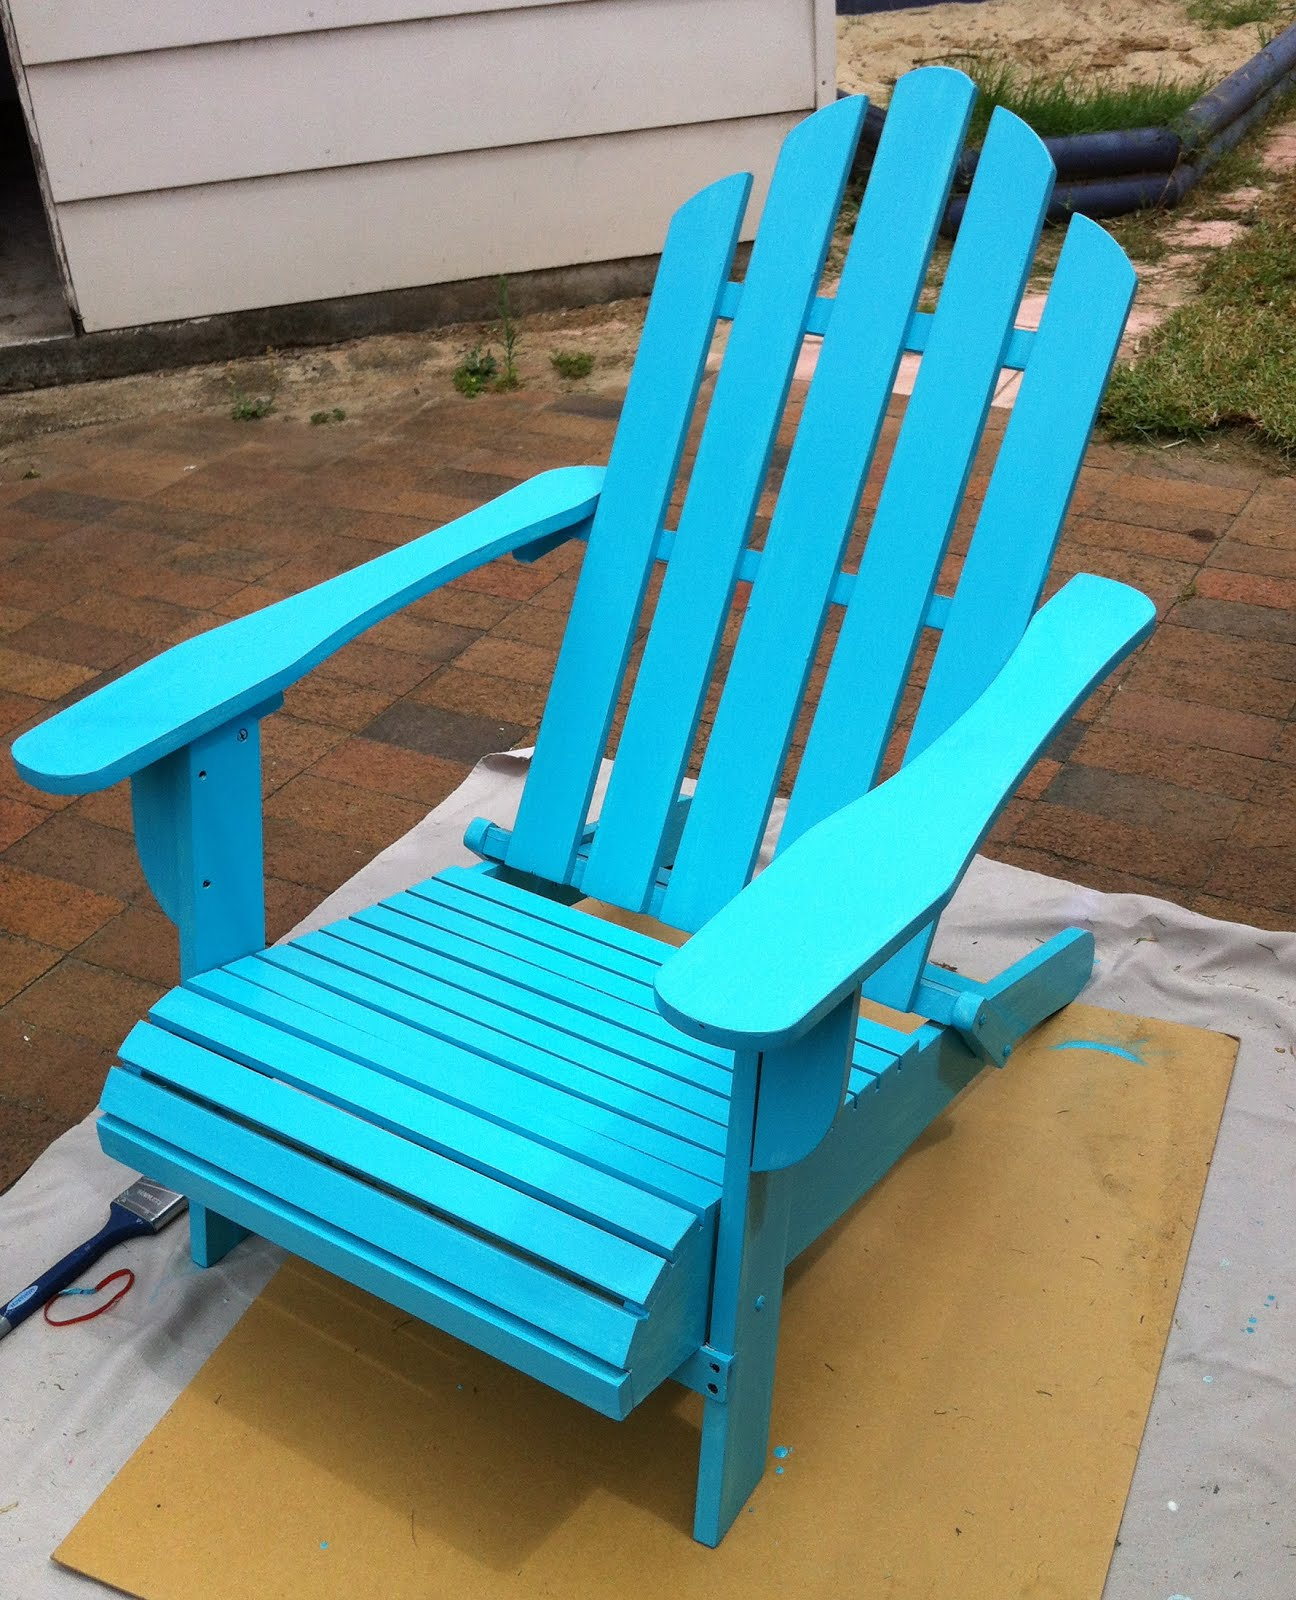 Wooden Beach Chair Makeover! - Giggleberry Creations!: Wooden Beach Chair Makeover!